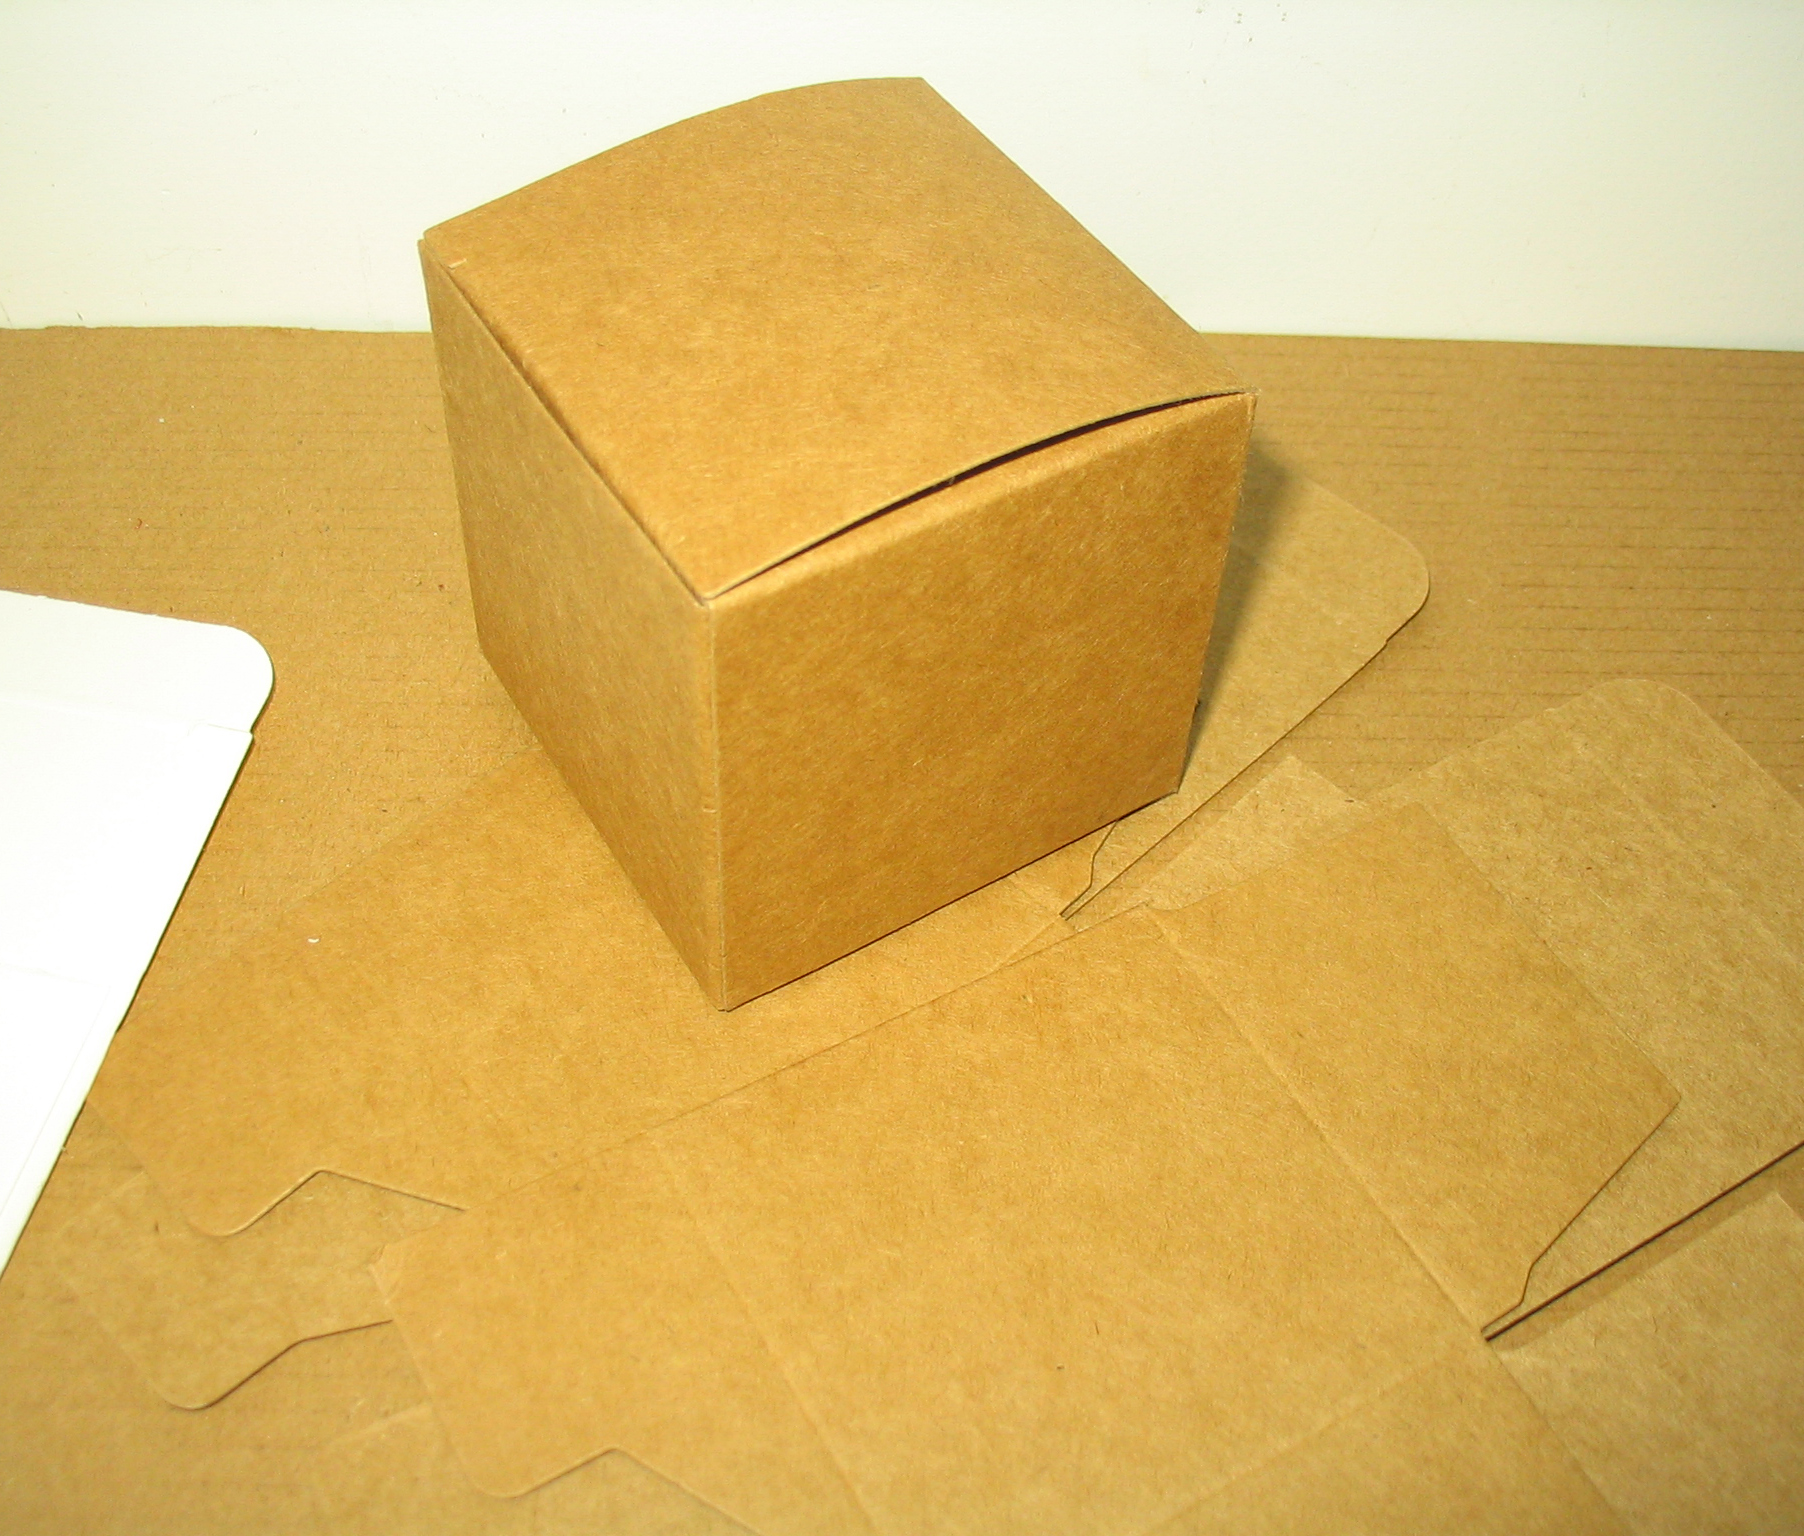 100pcs/pack: 3x3x3cm cute small beautiful carton Jewelry Box kraft paper packaging boxes Cosmetics and valve tubes package(China (Mainland))